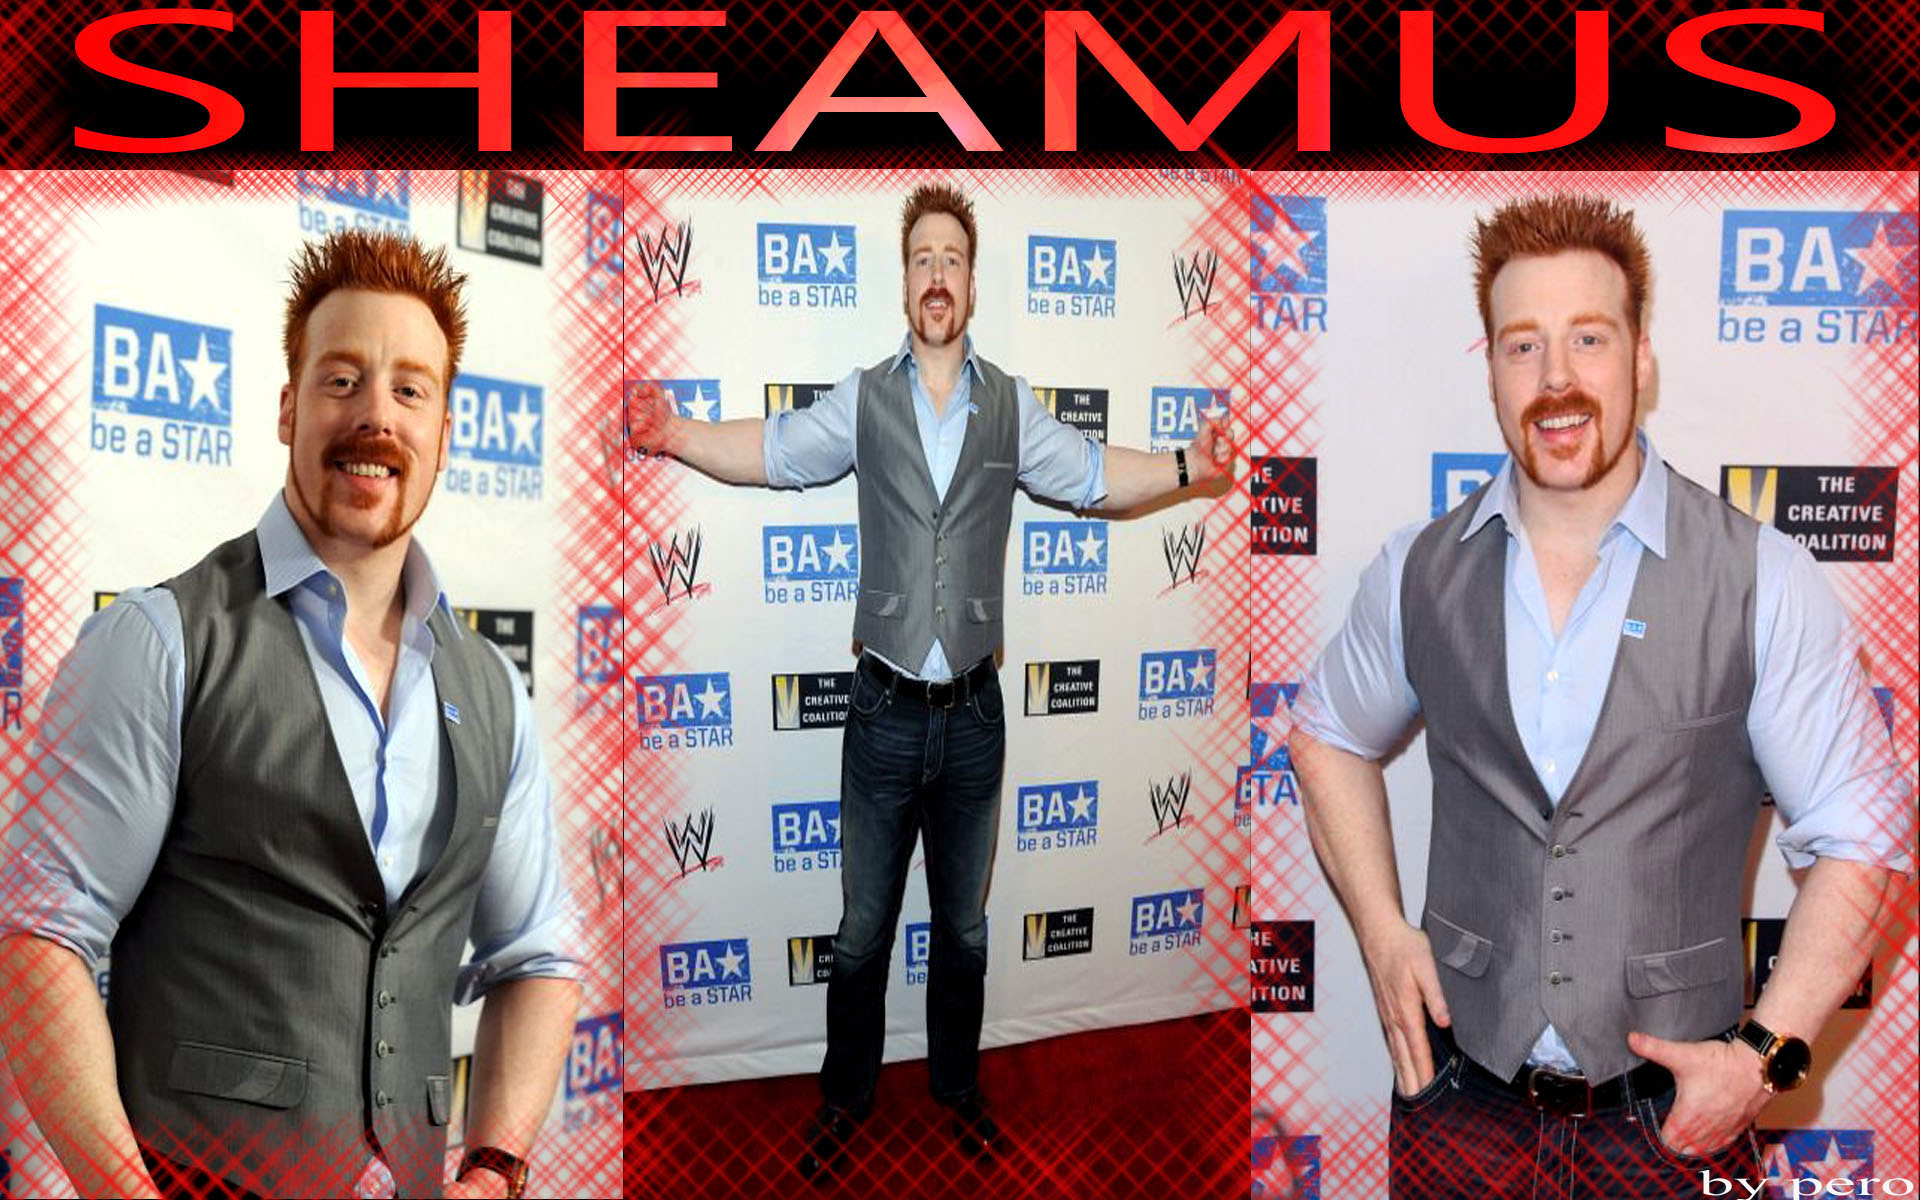 http://images5.fanpop.com/image/photos/25100000/the-great-white-sheamus-25112737-1920-1200.jpg